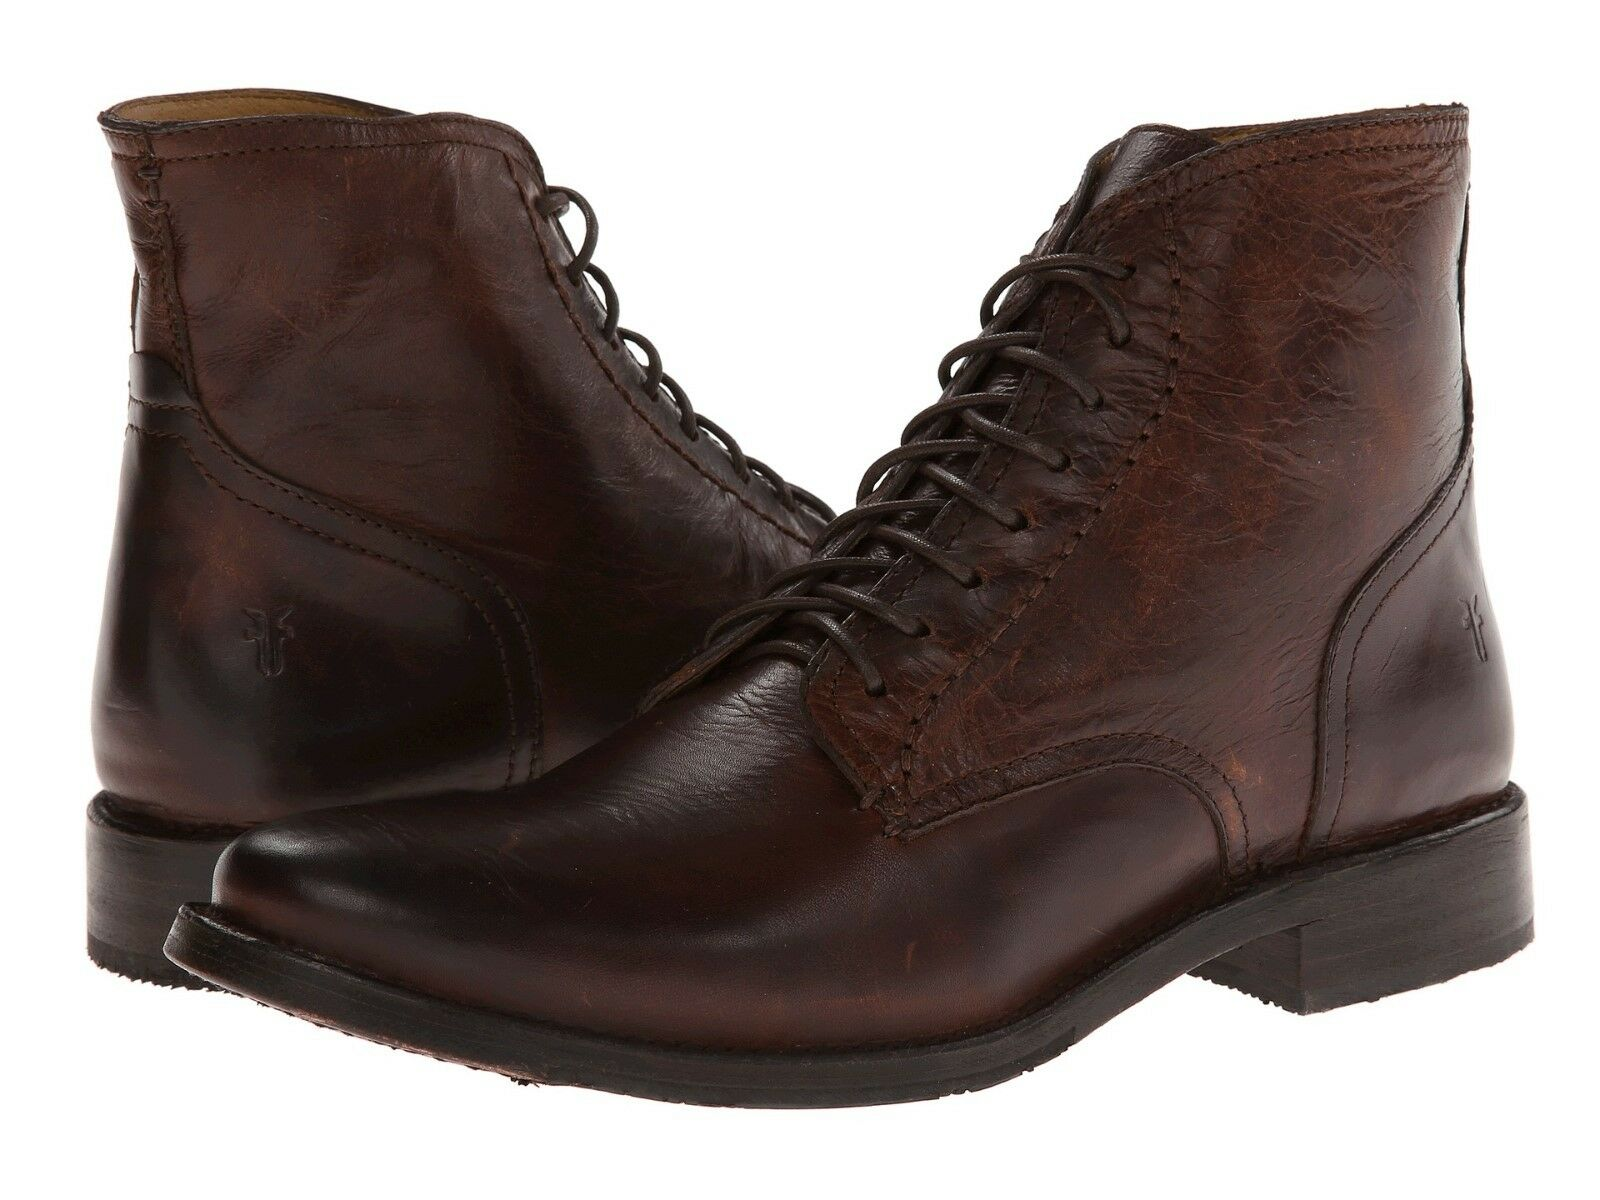 Mens Frye Boots Oliver Lace Up Dark Brown Leather 87856 DBN